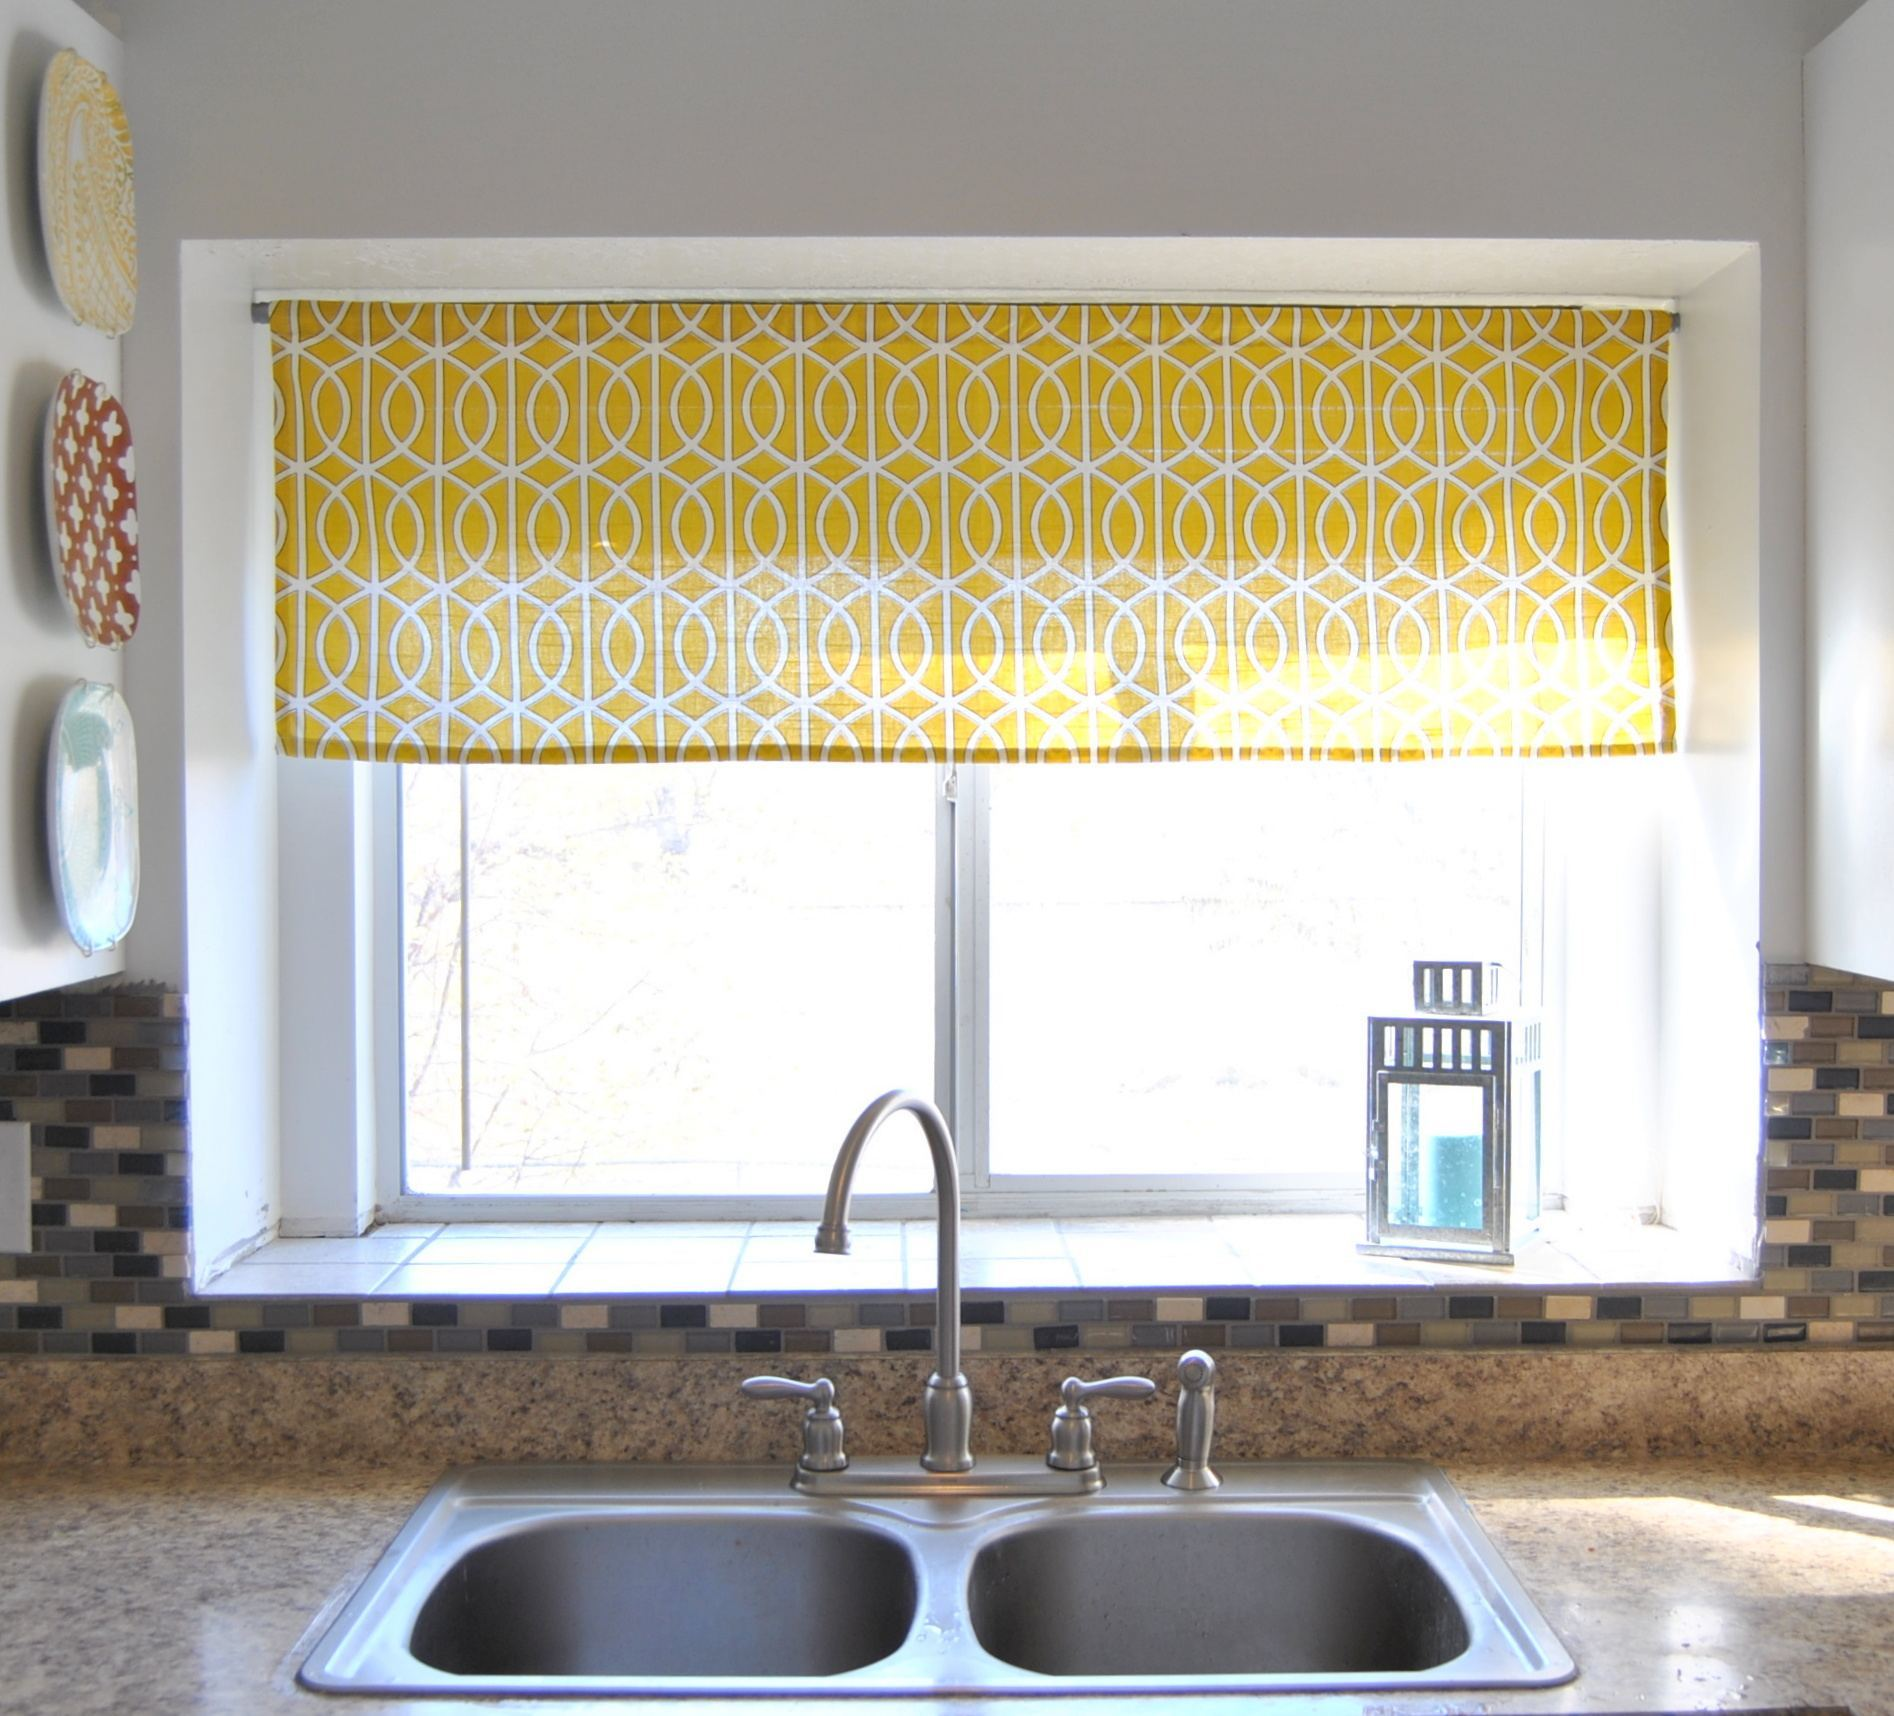 amazing-kitchen-window-curtain-designs-ideas_yellow-moroccan-pettern-windows-valance_grey-metal-double-bowl-kitchen-sink_beige-seamless-granite-kitchen-countertops